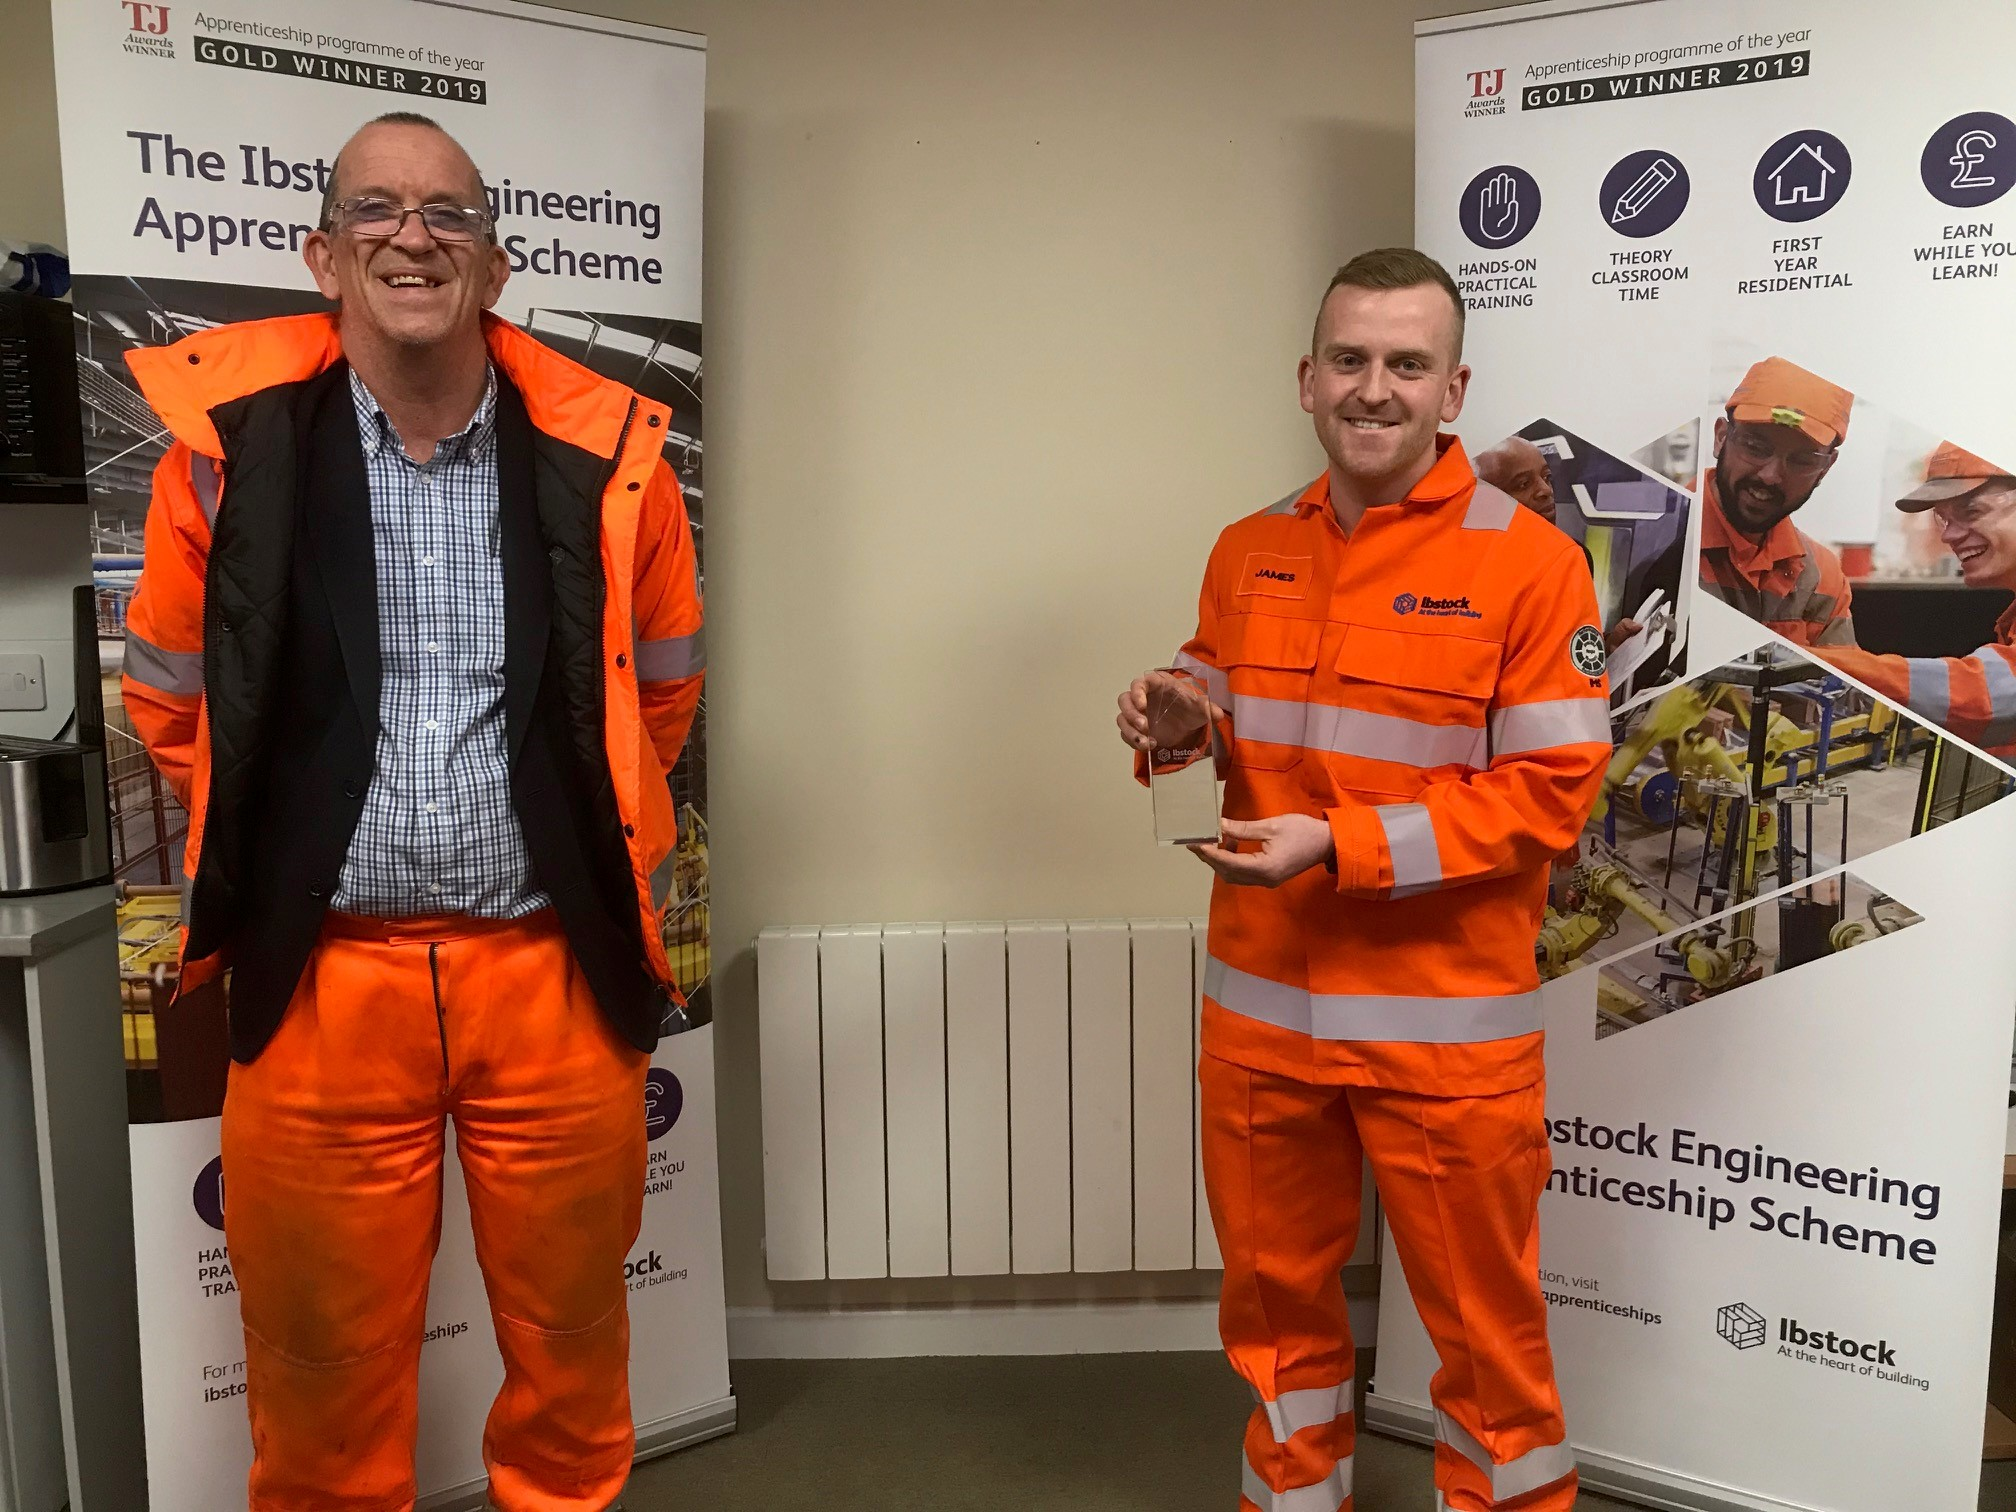 Ibstock Plc names James Dowson as its Apprentice of the Year